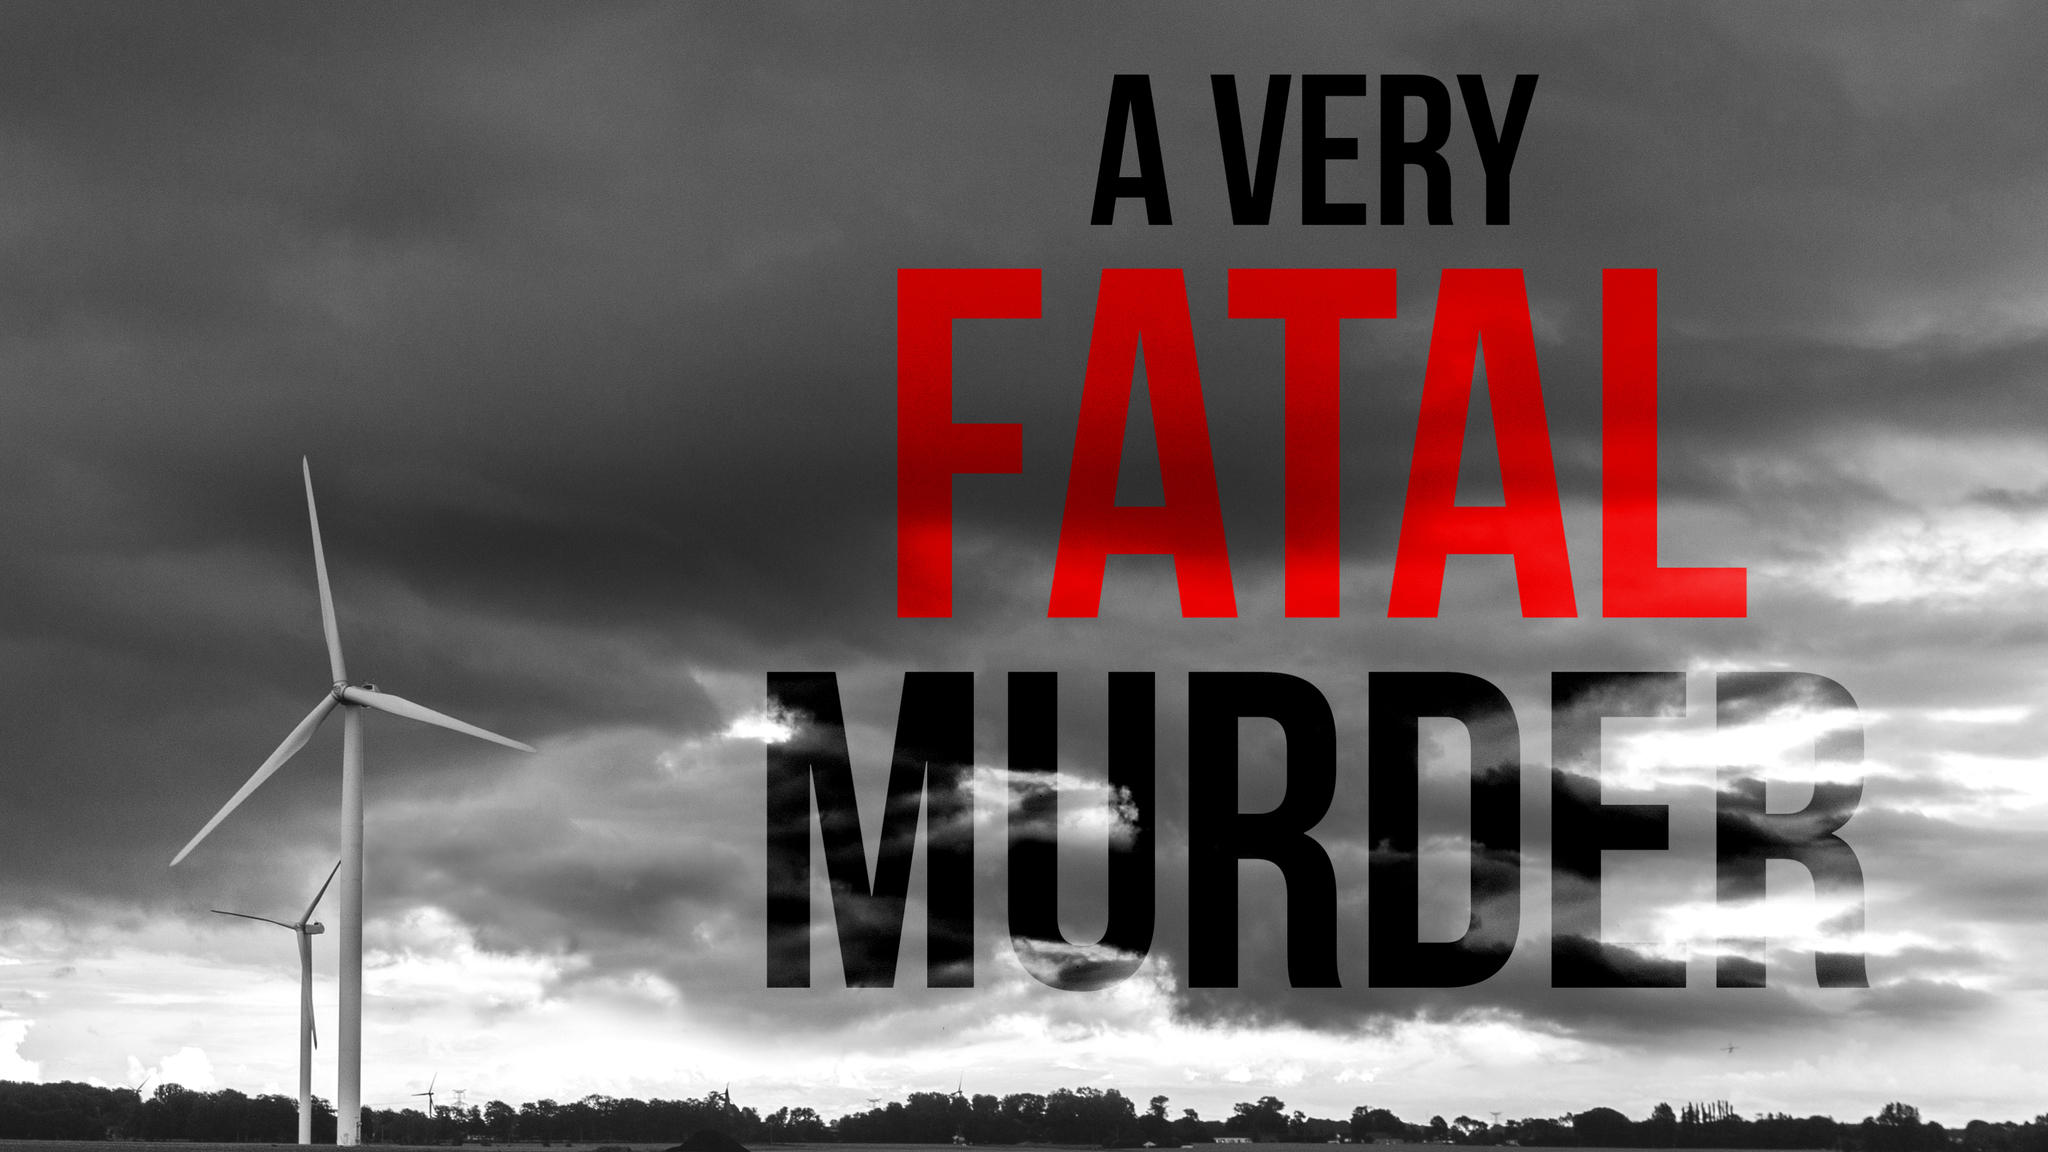 """""""A Very Fatal Murder"""" pokes fun at the true-crime podcast genre. The wind turbine shown here plays a role."""